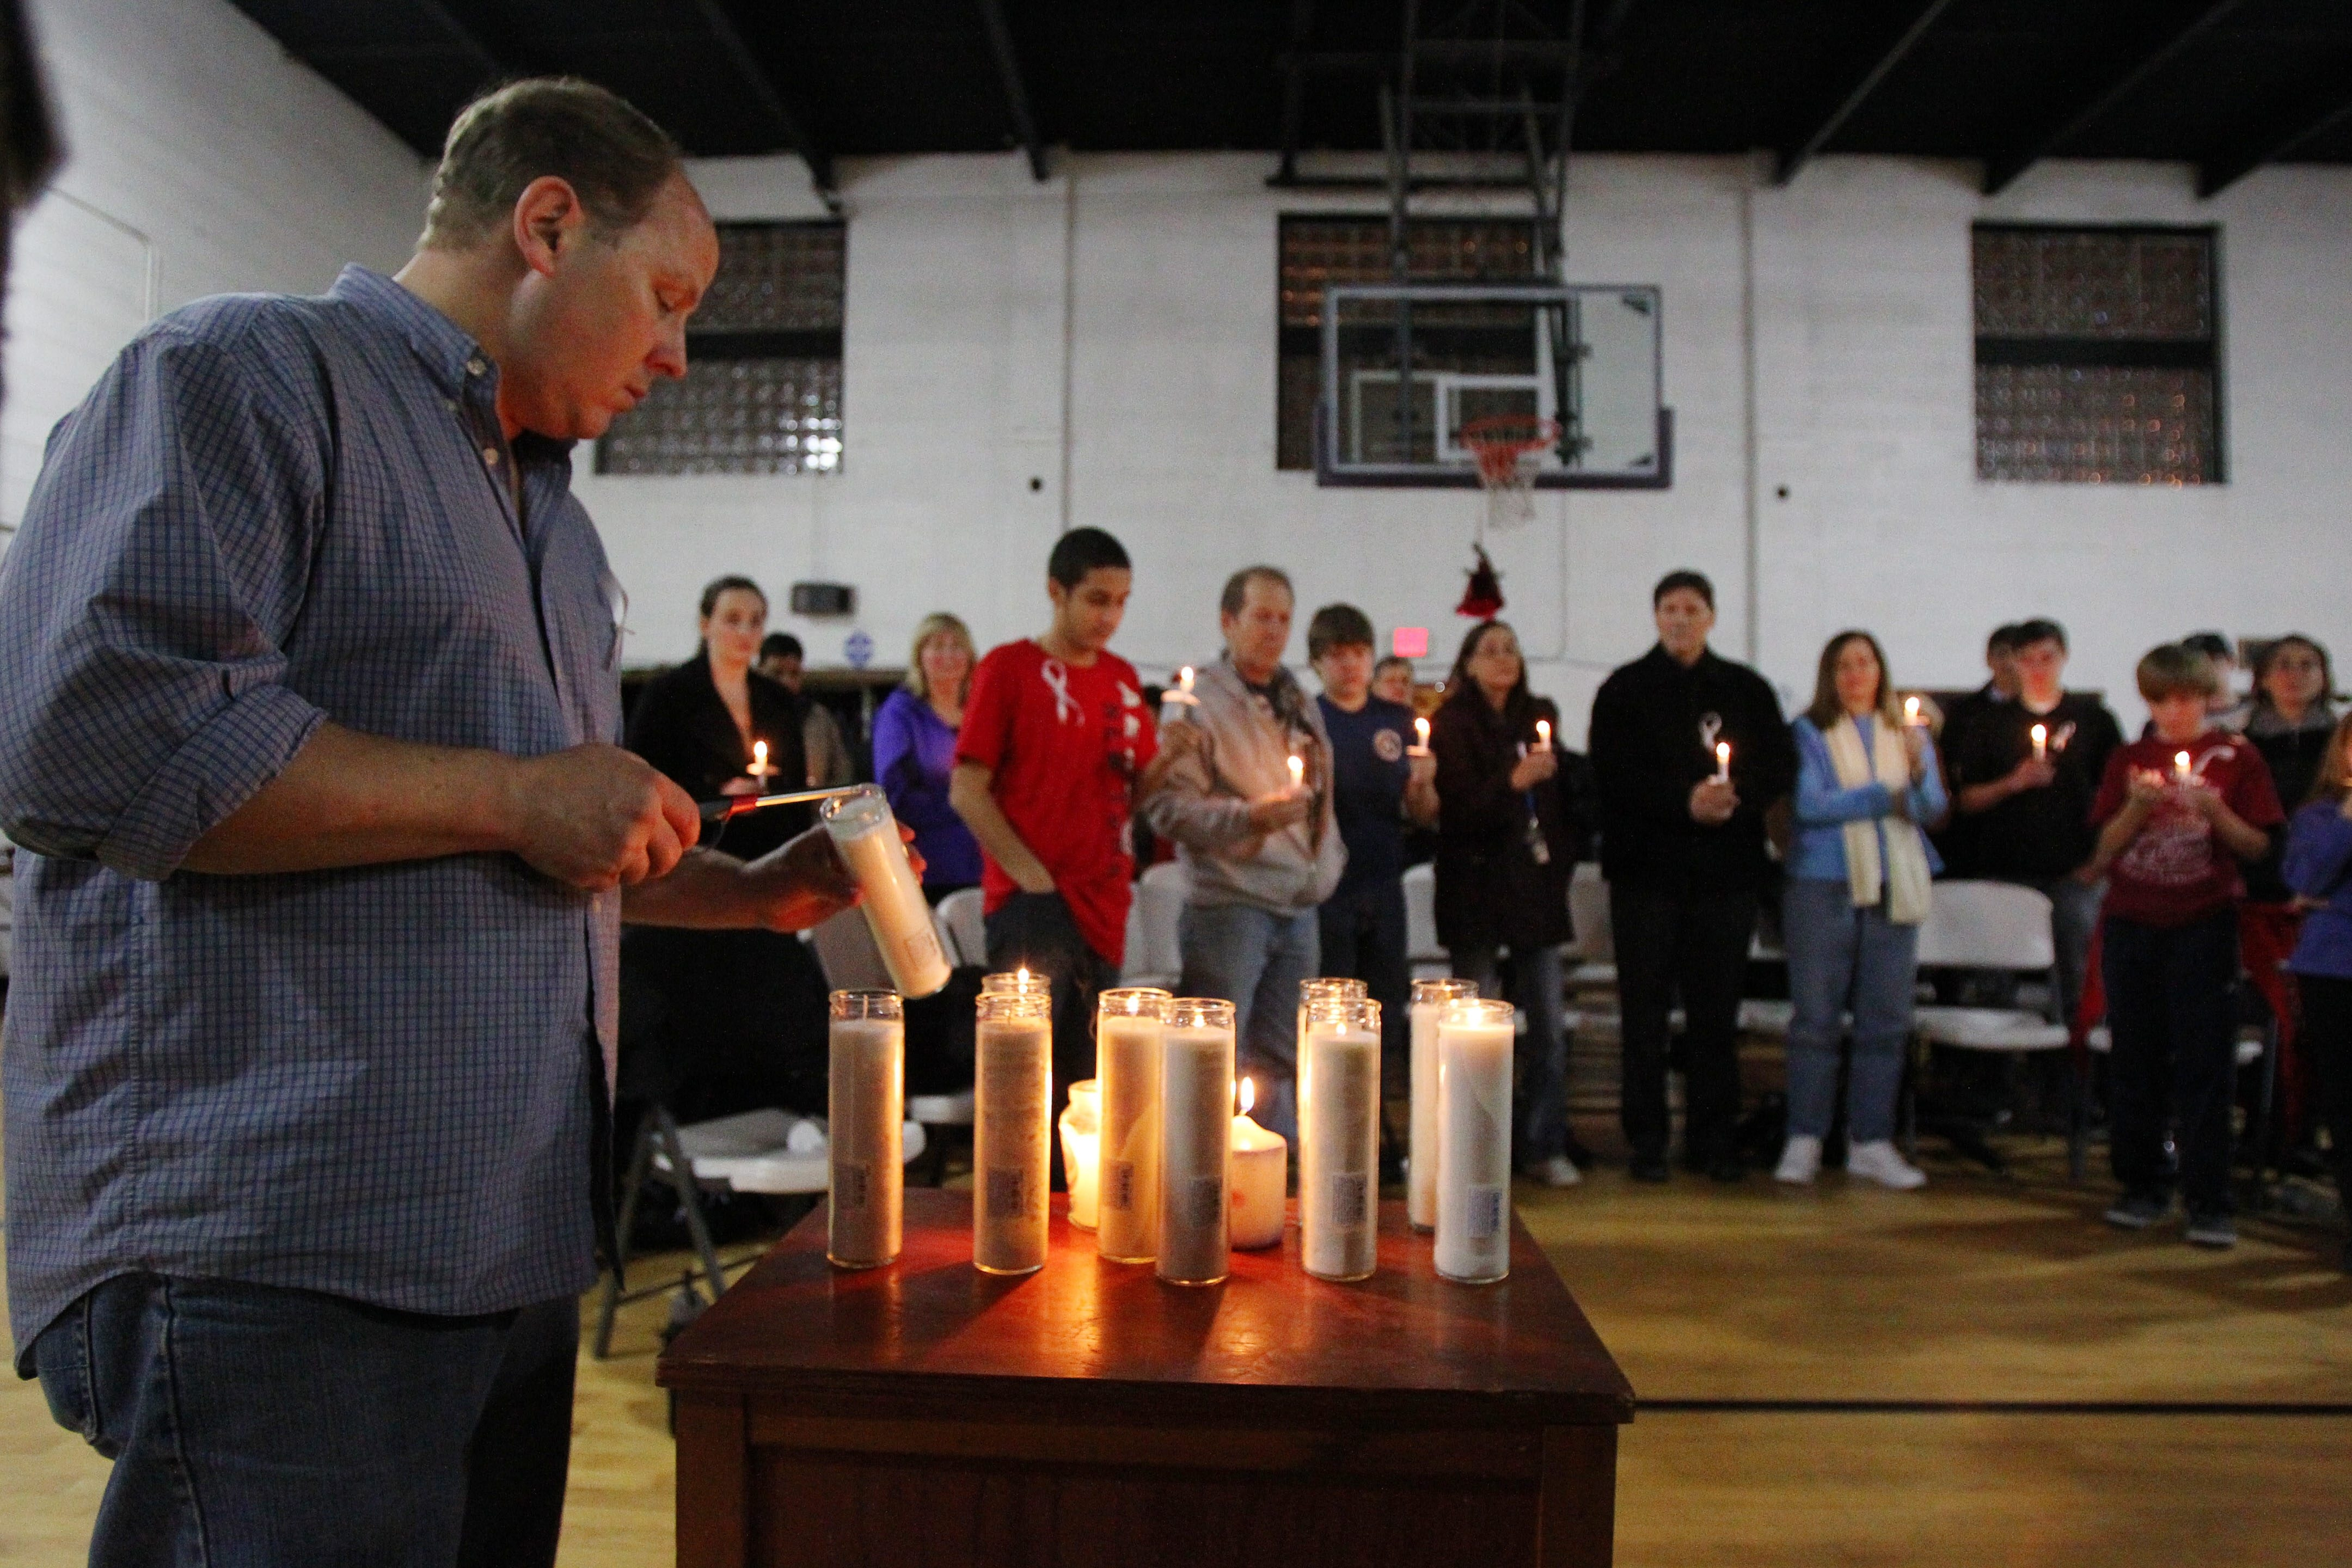 Volunteer Peter Warn lights candles for each of the nine homeless people who died in the Buffalo area this year during a memorial service Saturday at the Lt. Col. Matt Urban Hope Center.